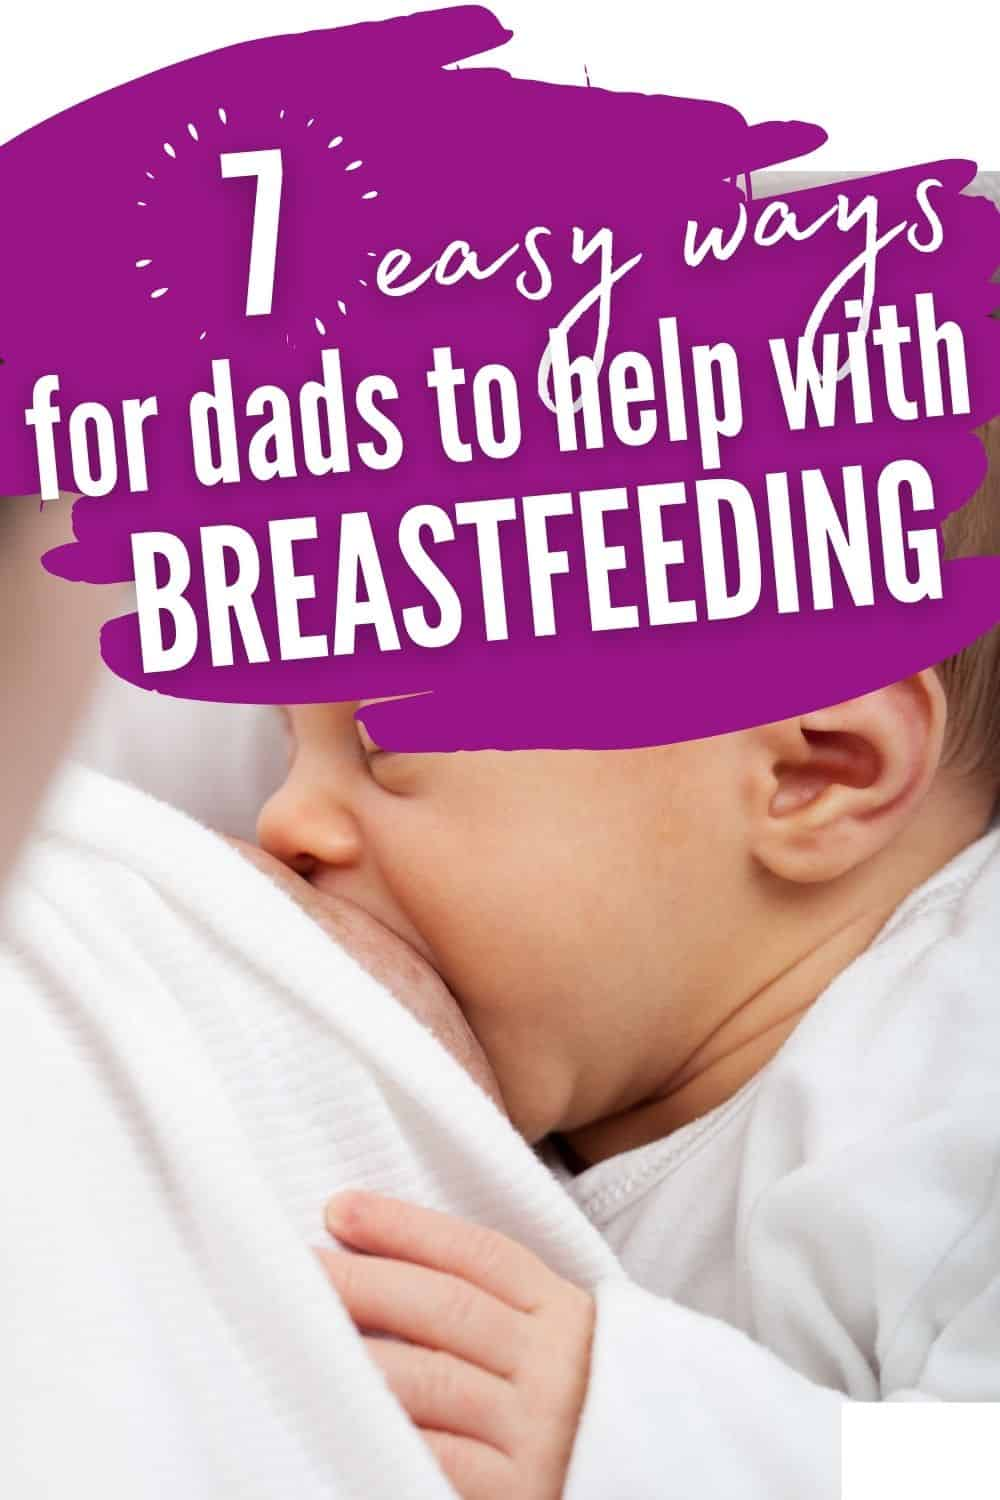 how can dads help with breastfeeding